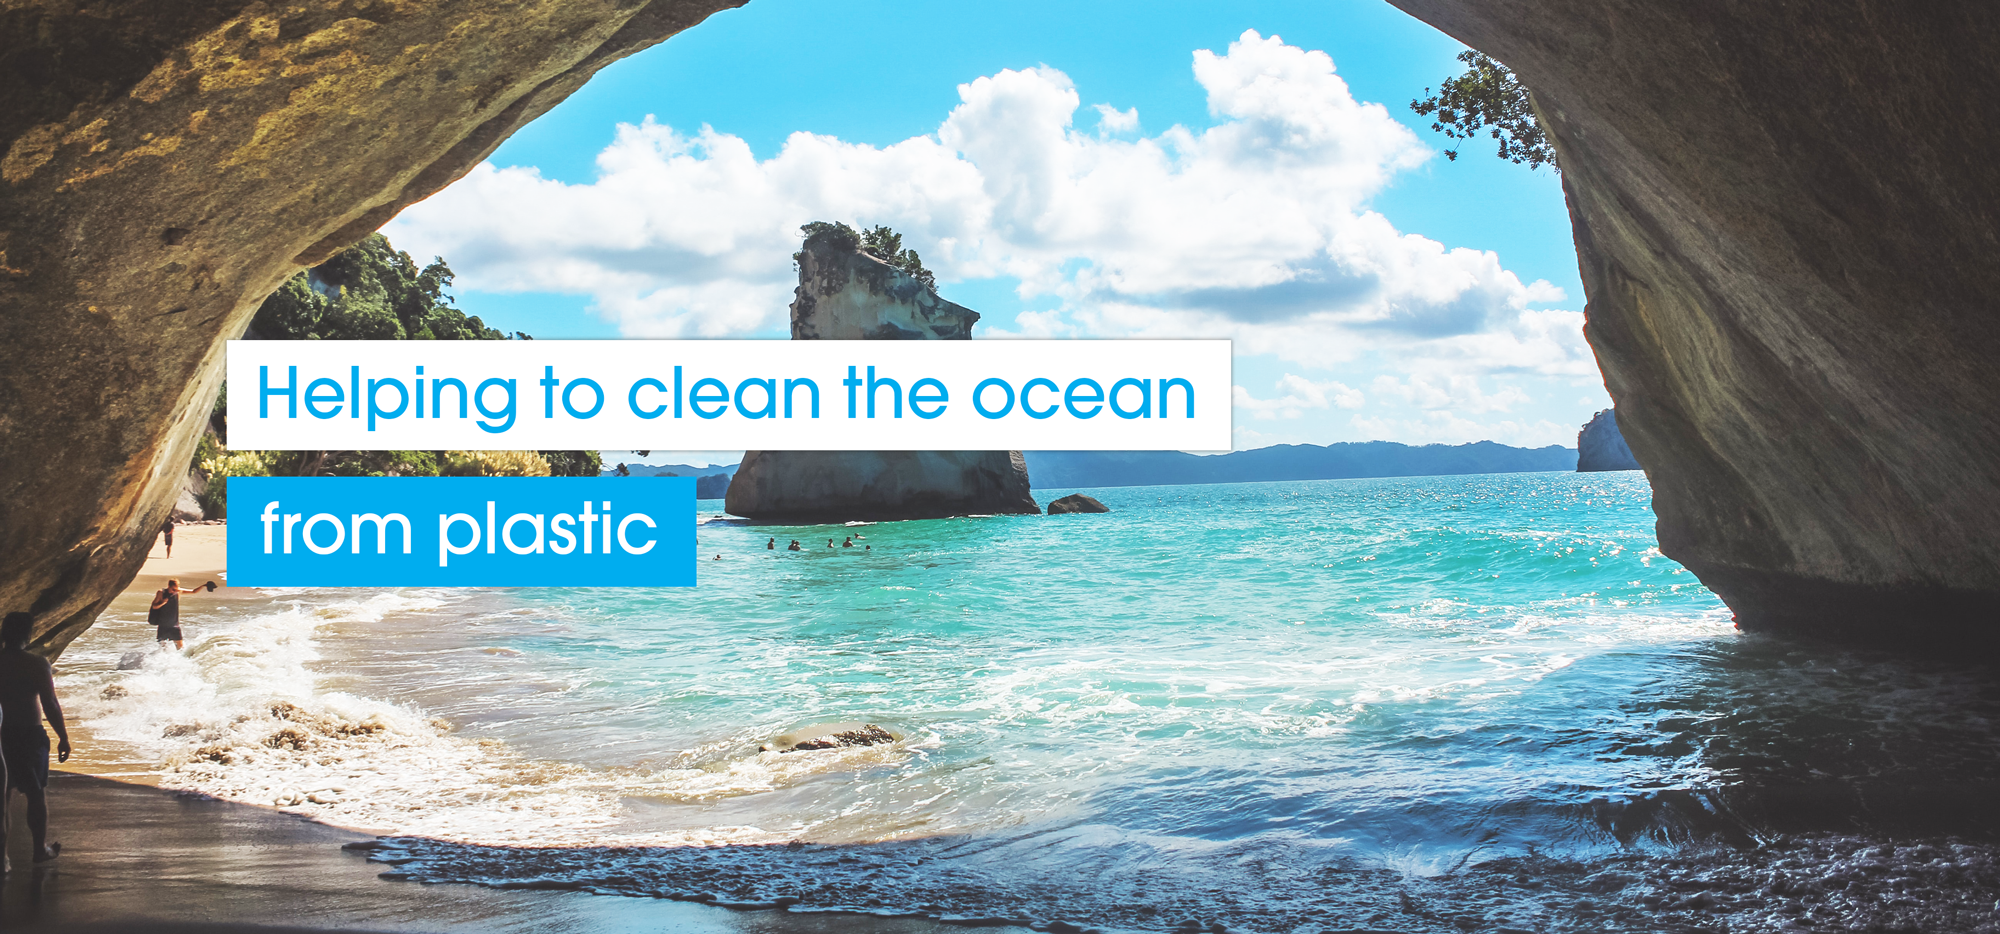 Helping to clean the ocean from plastic